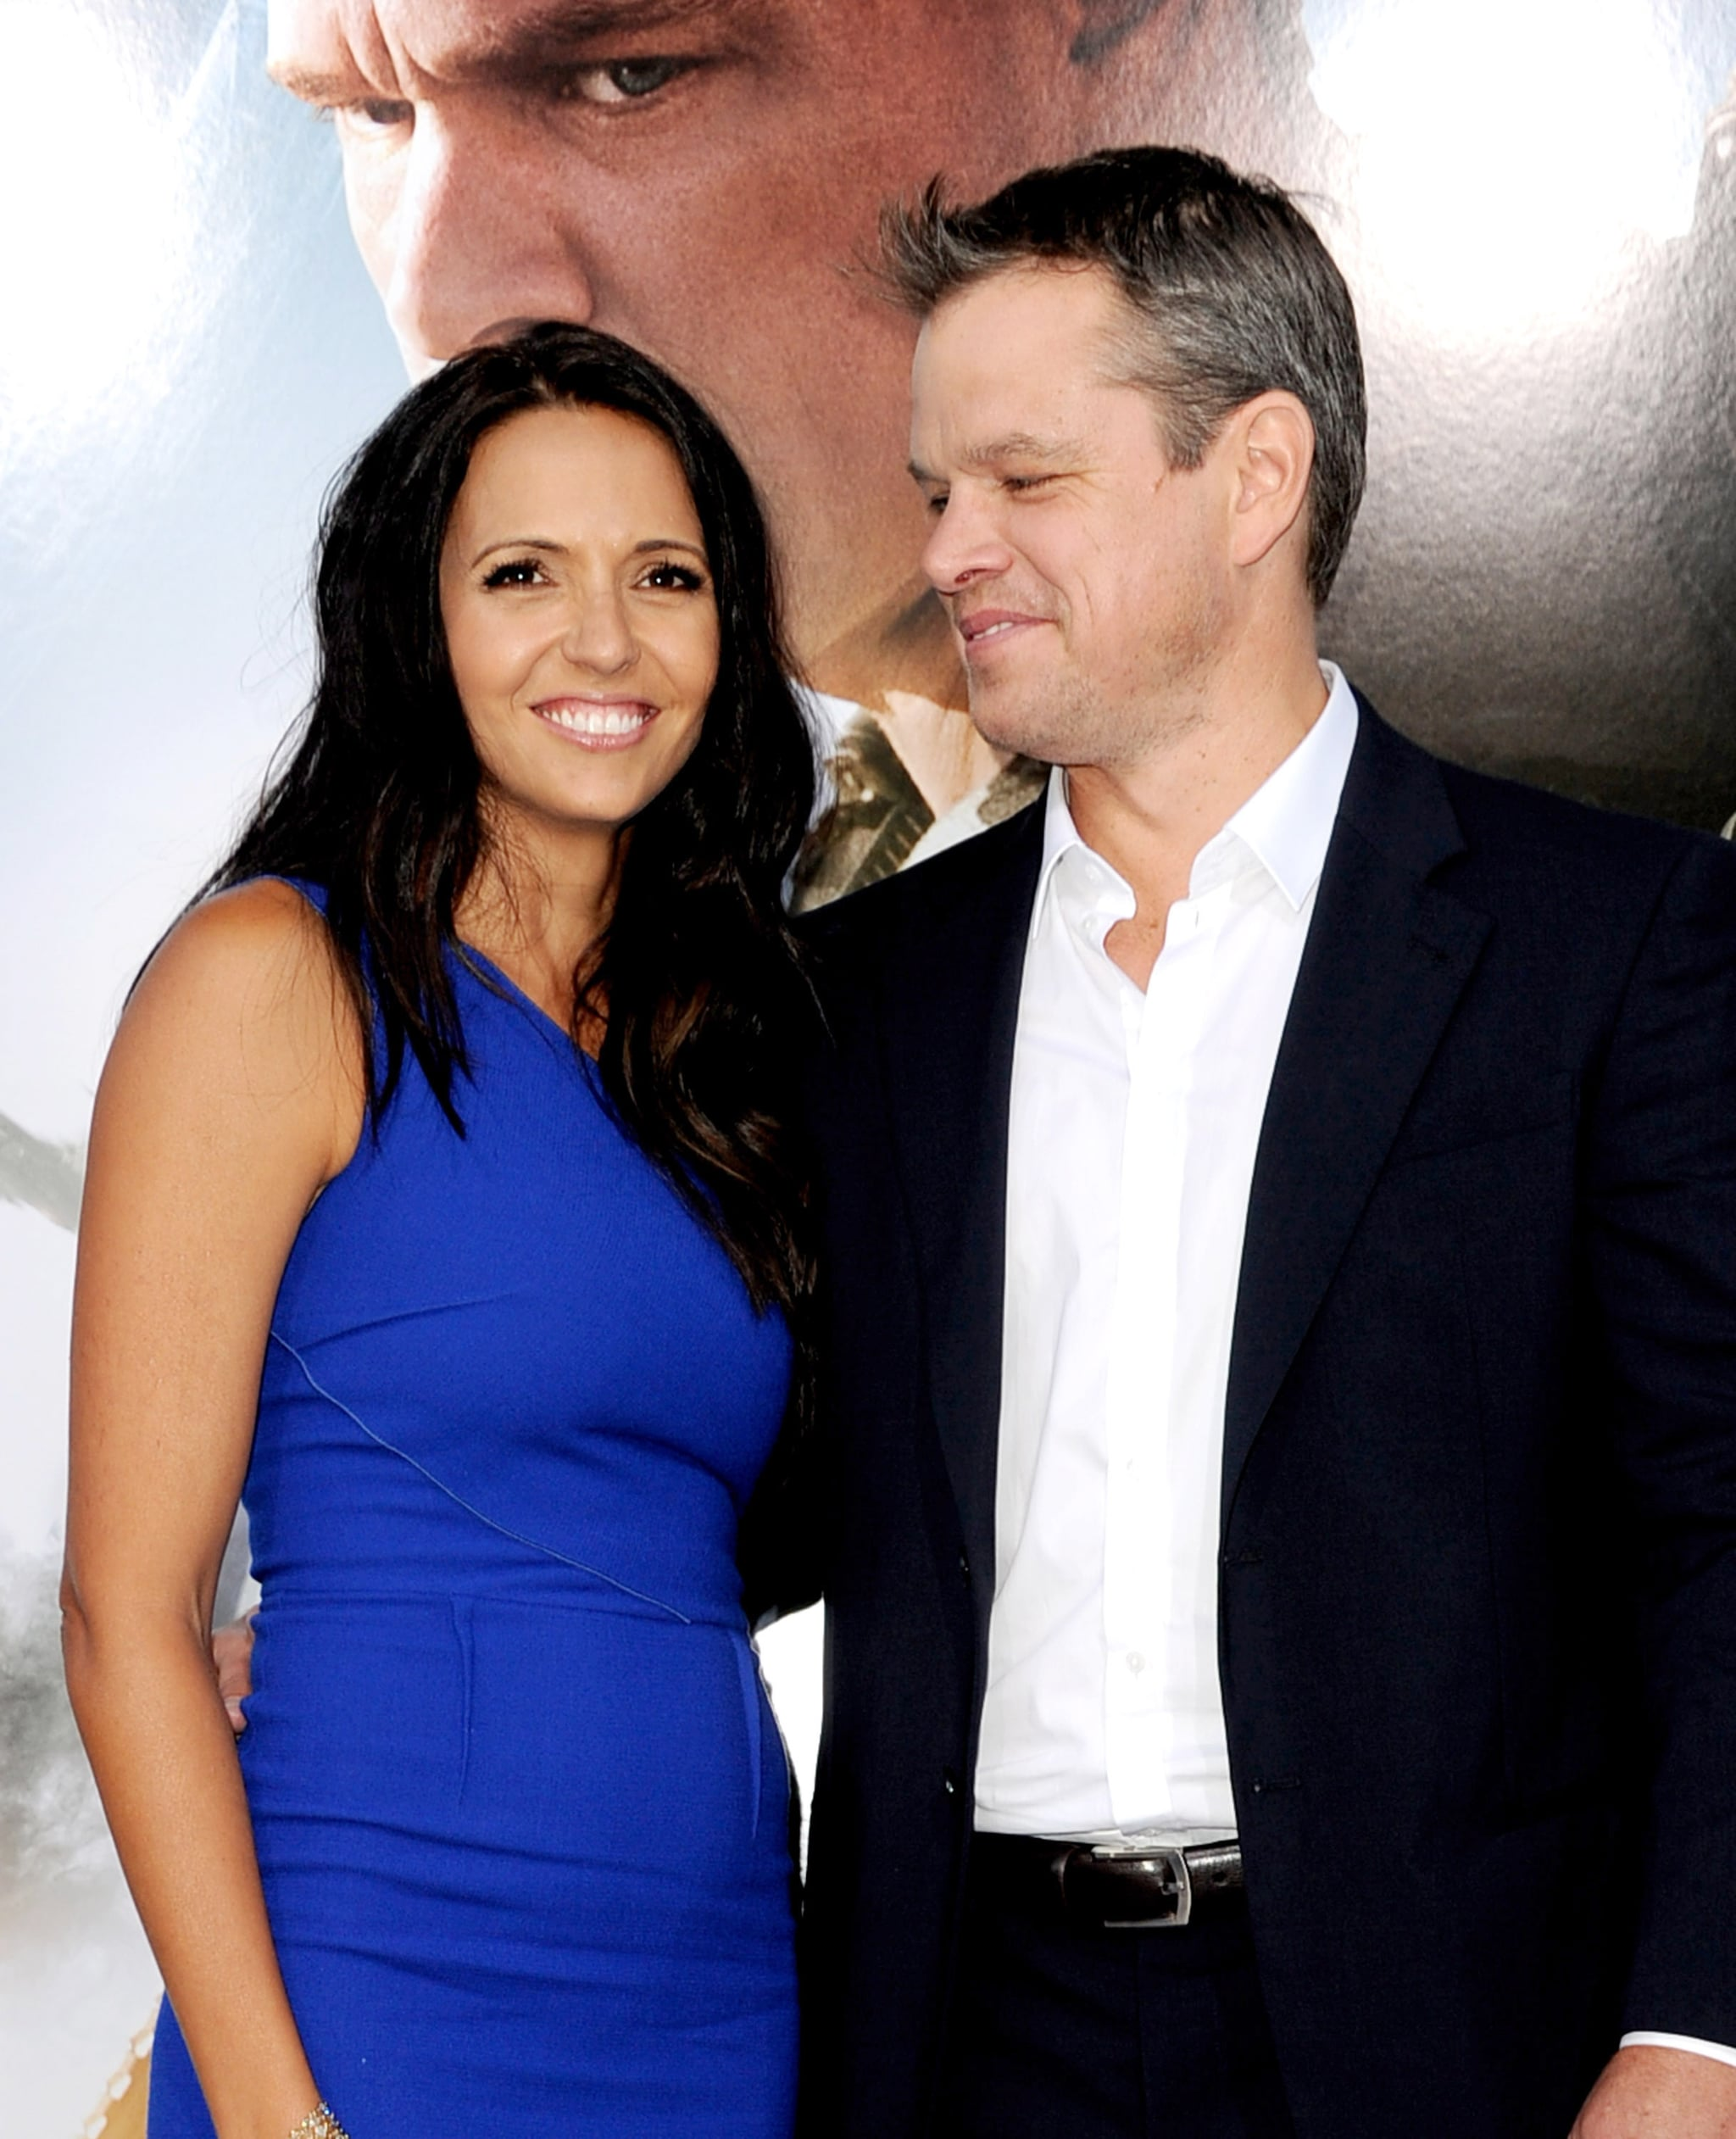 Matt Damon and Luciana Barroso Are Hollywood's Best Couple - Vogue